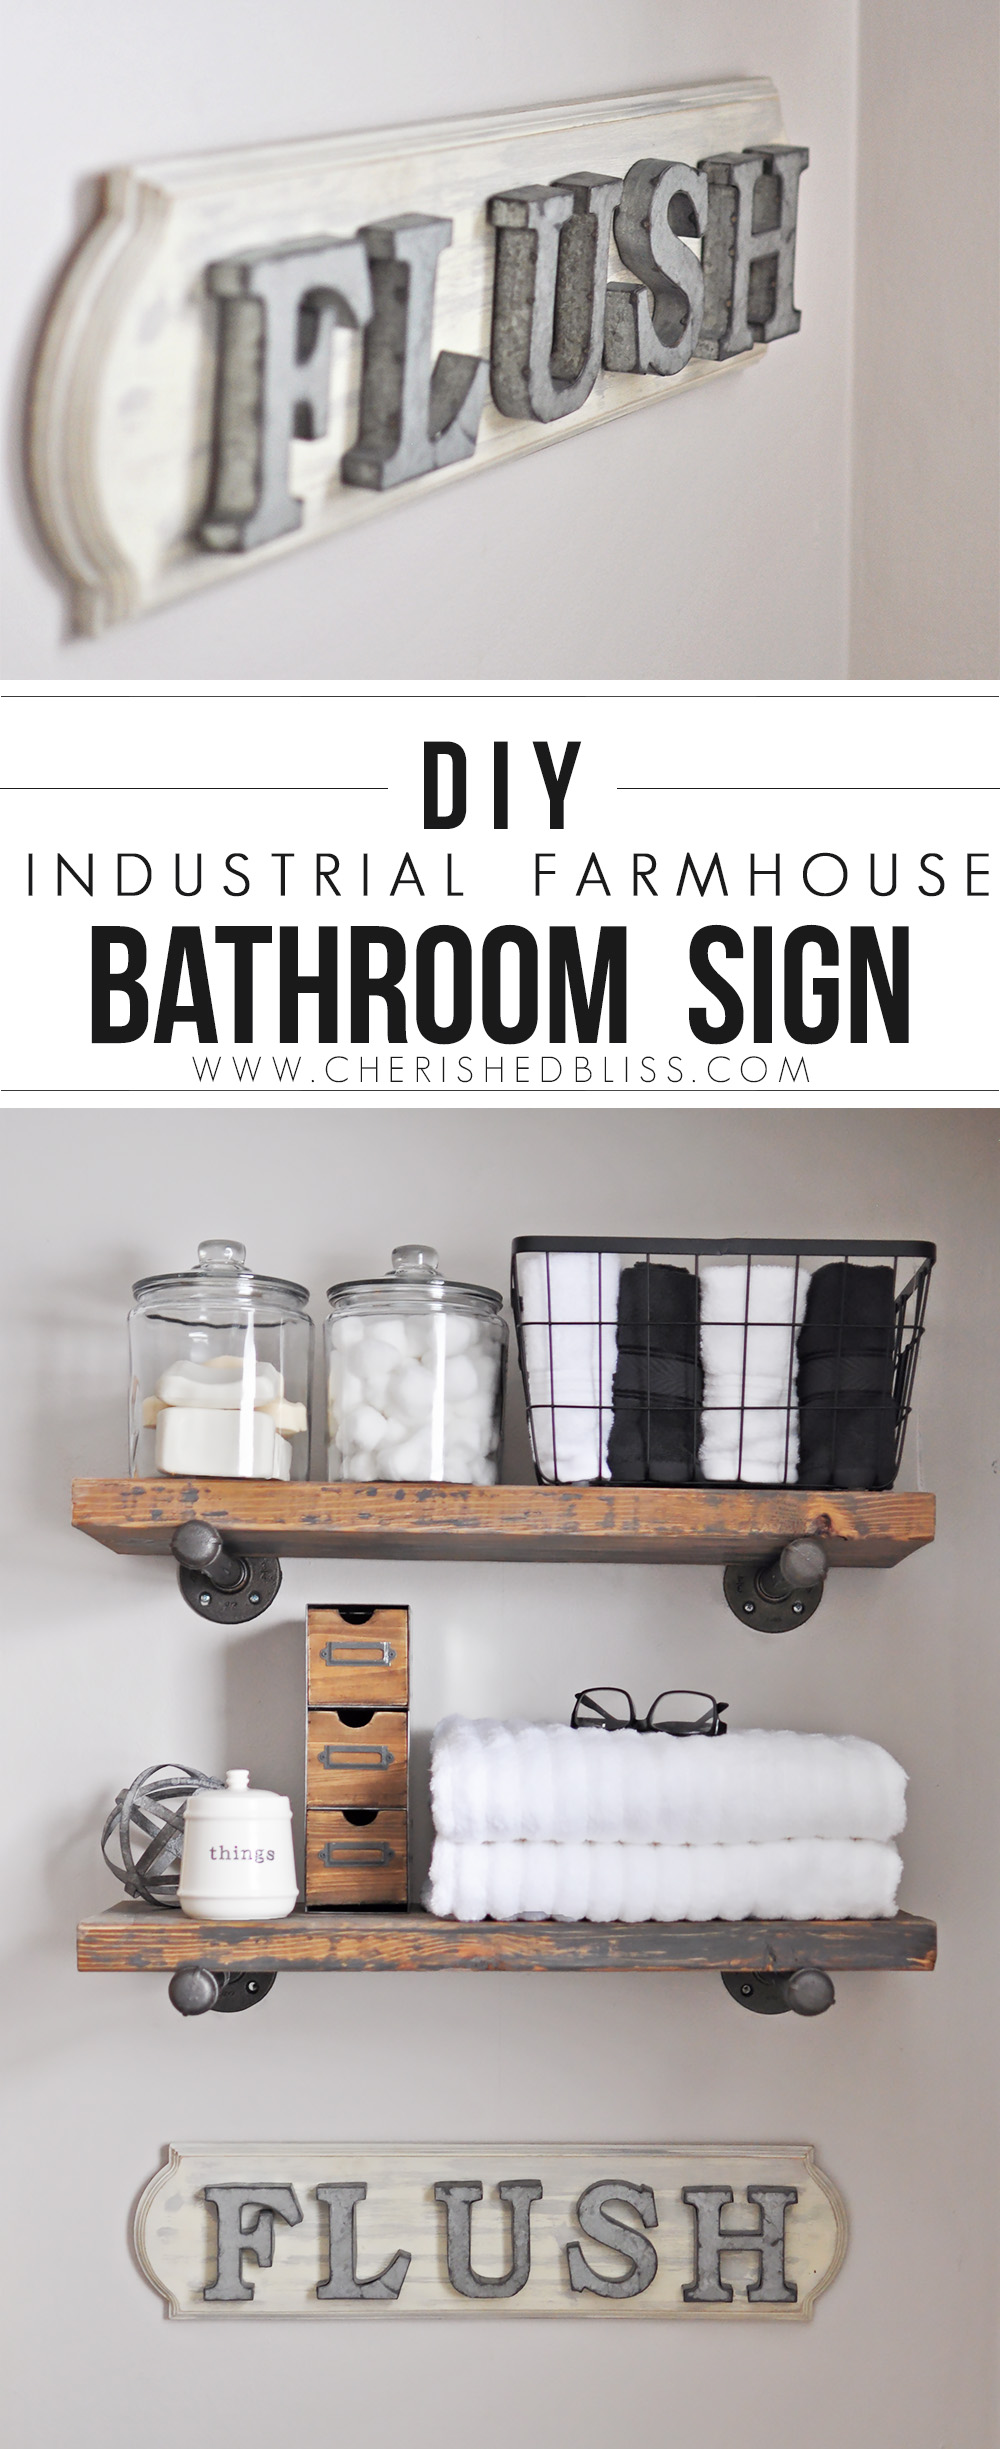 DIY Industrial Farmhouse Bathroom Sign